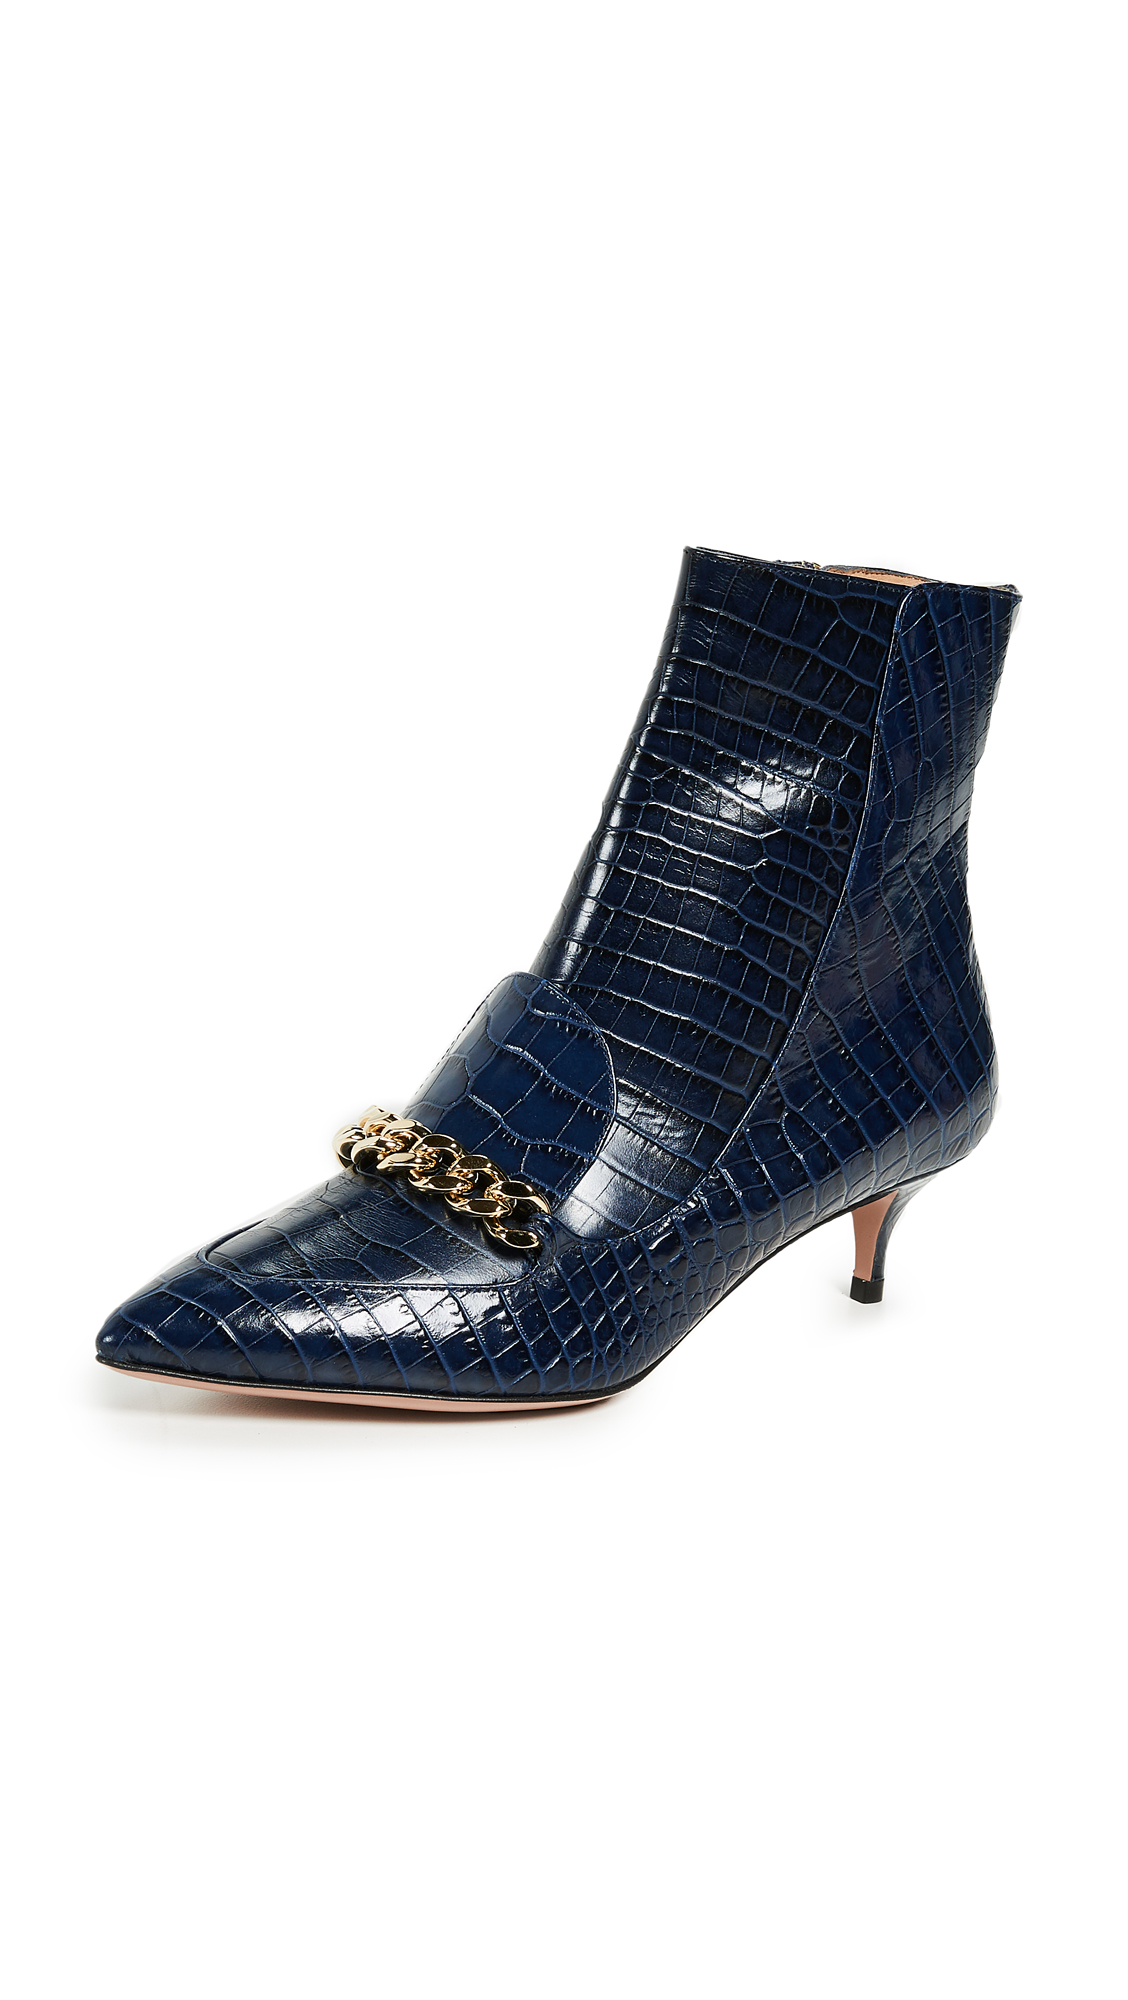 Aquazzura Editor 45mm Booties - Dark Indigo